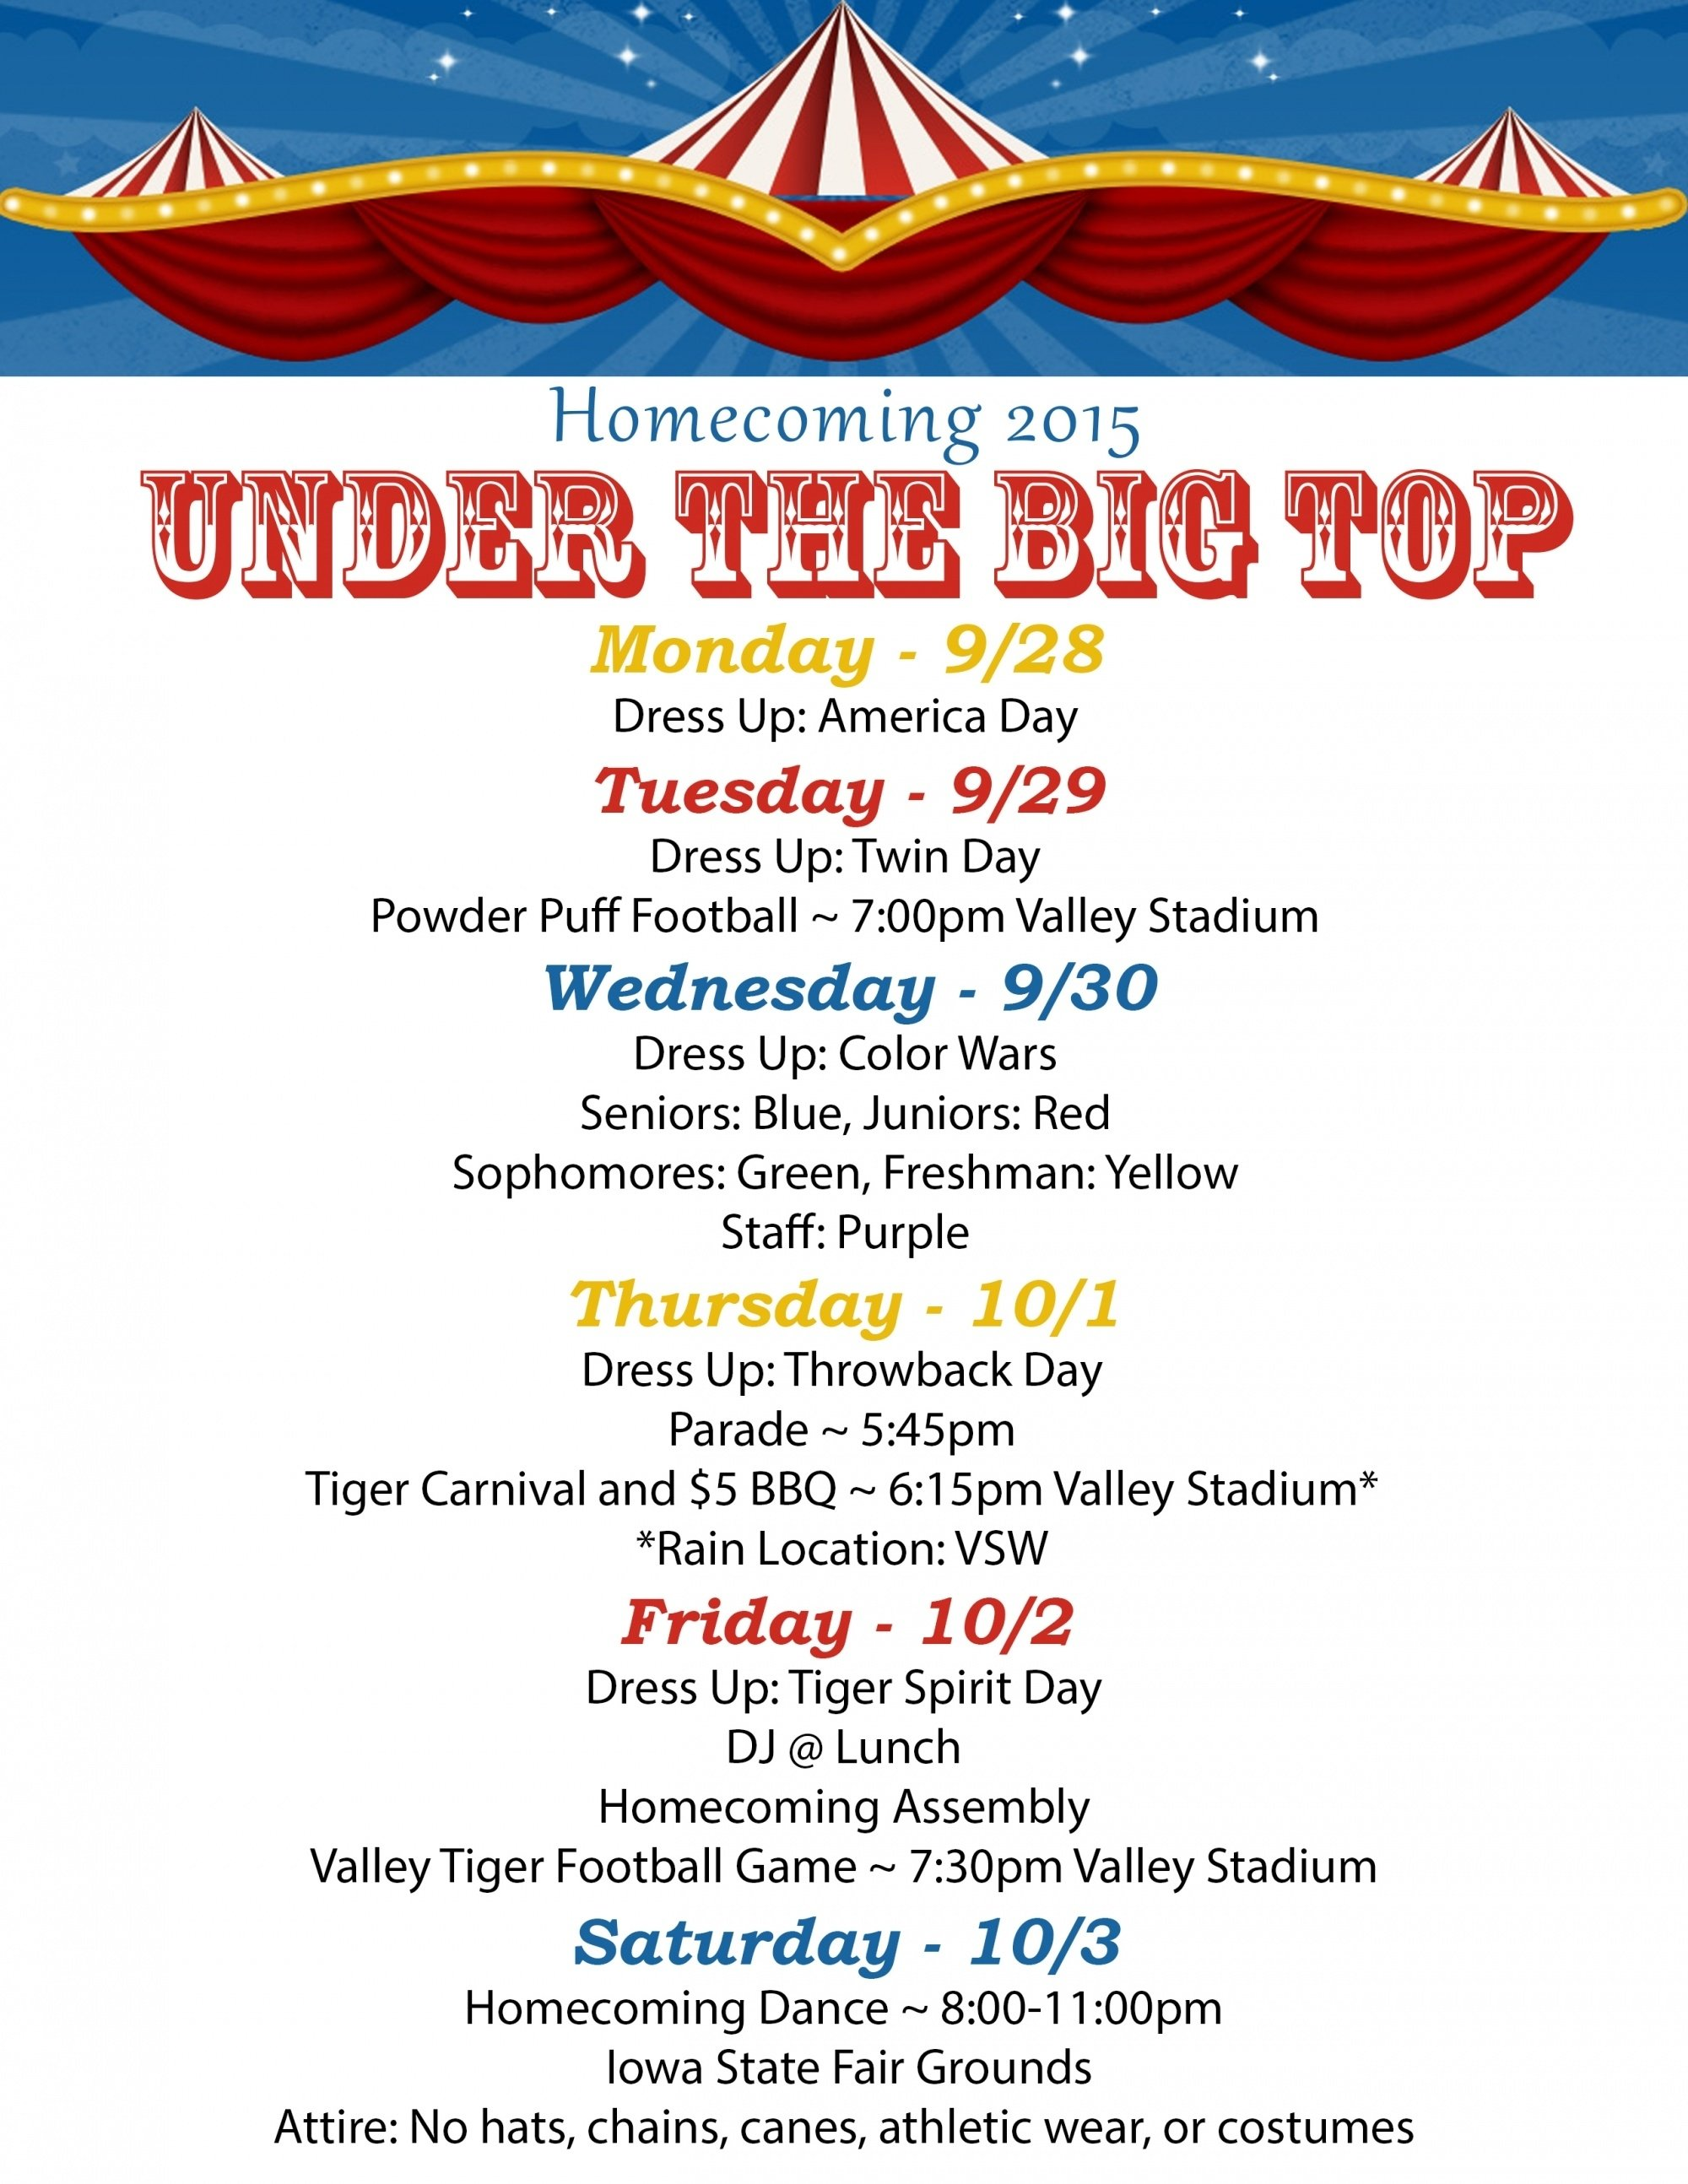 10 Cute Homecoming Dress Up Days Ideas all about homecoming 2015 west des moines community schools 1